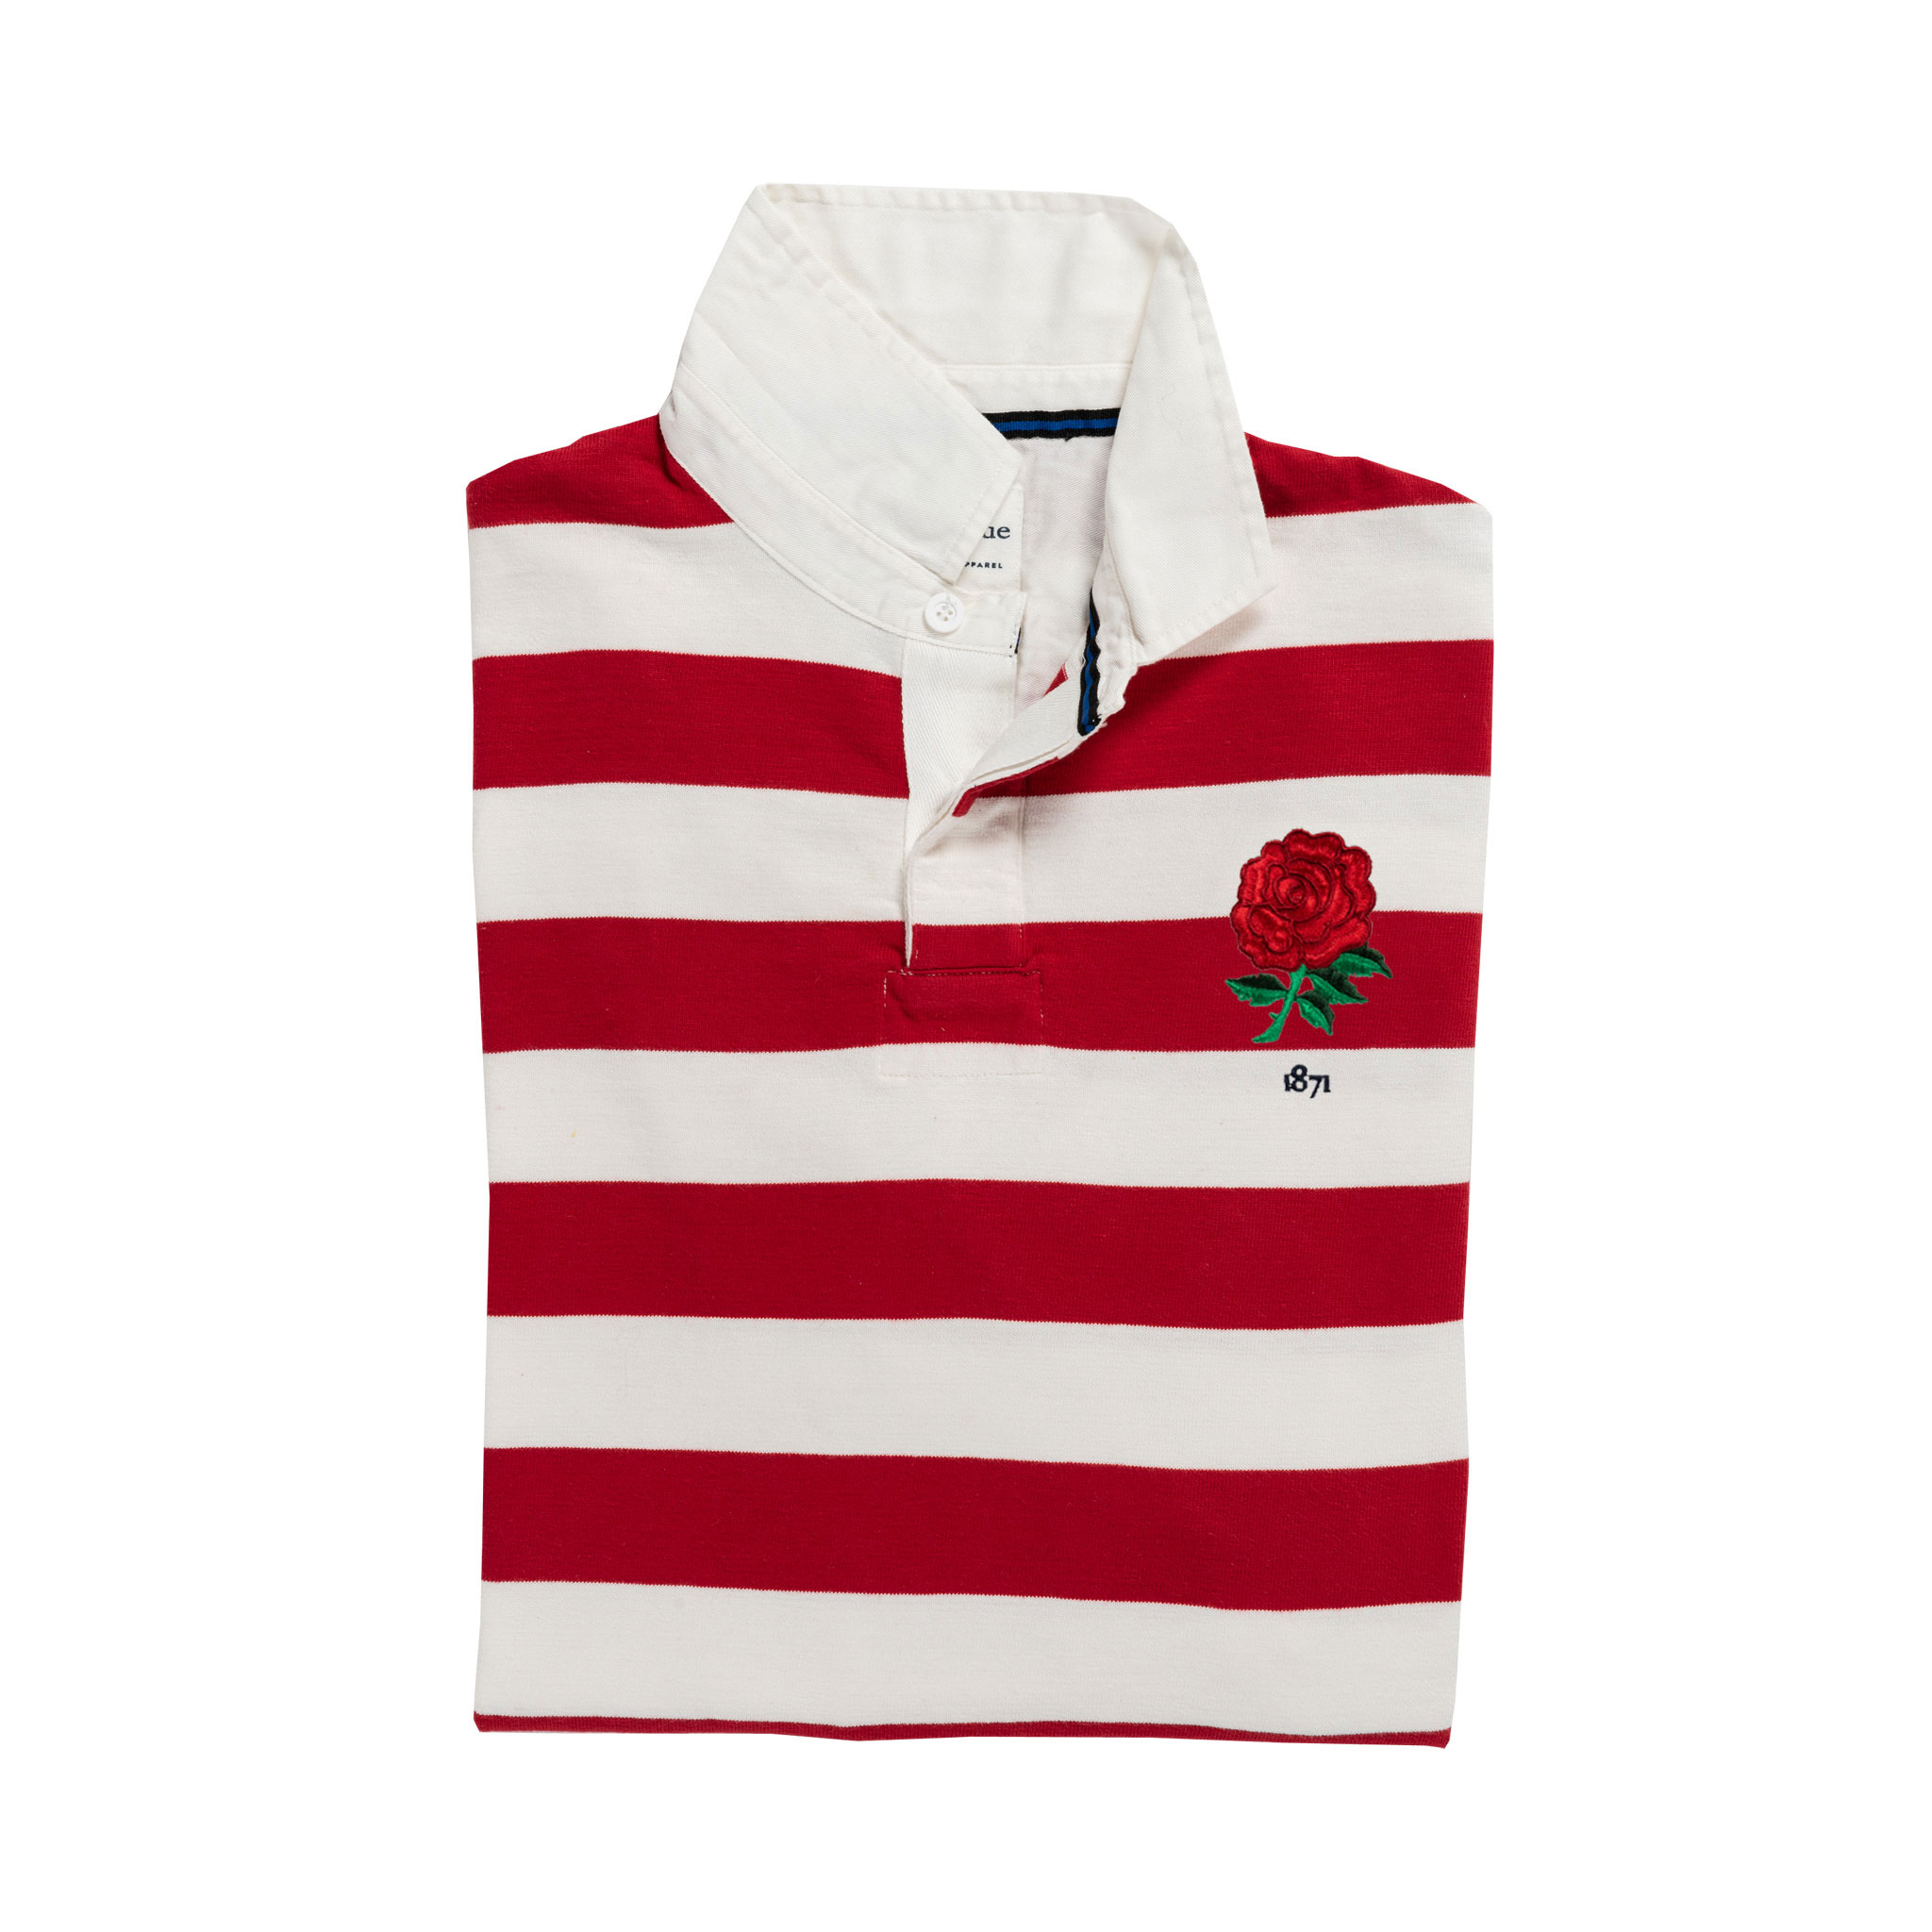 England 1871 Sky Red and White Vintage Rugby Shirt_Folded